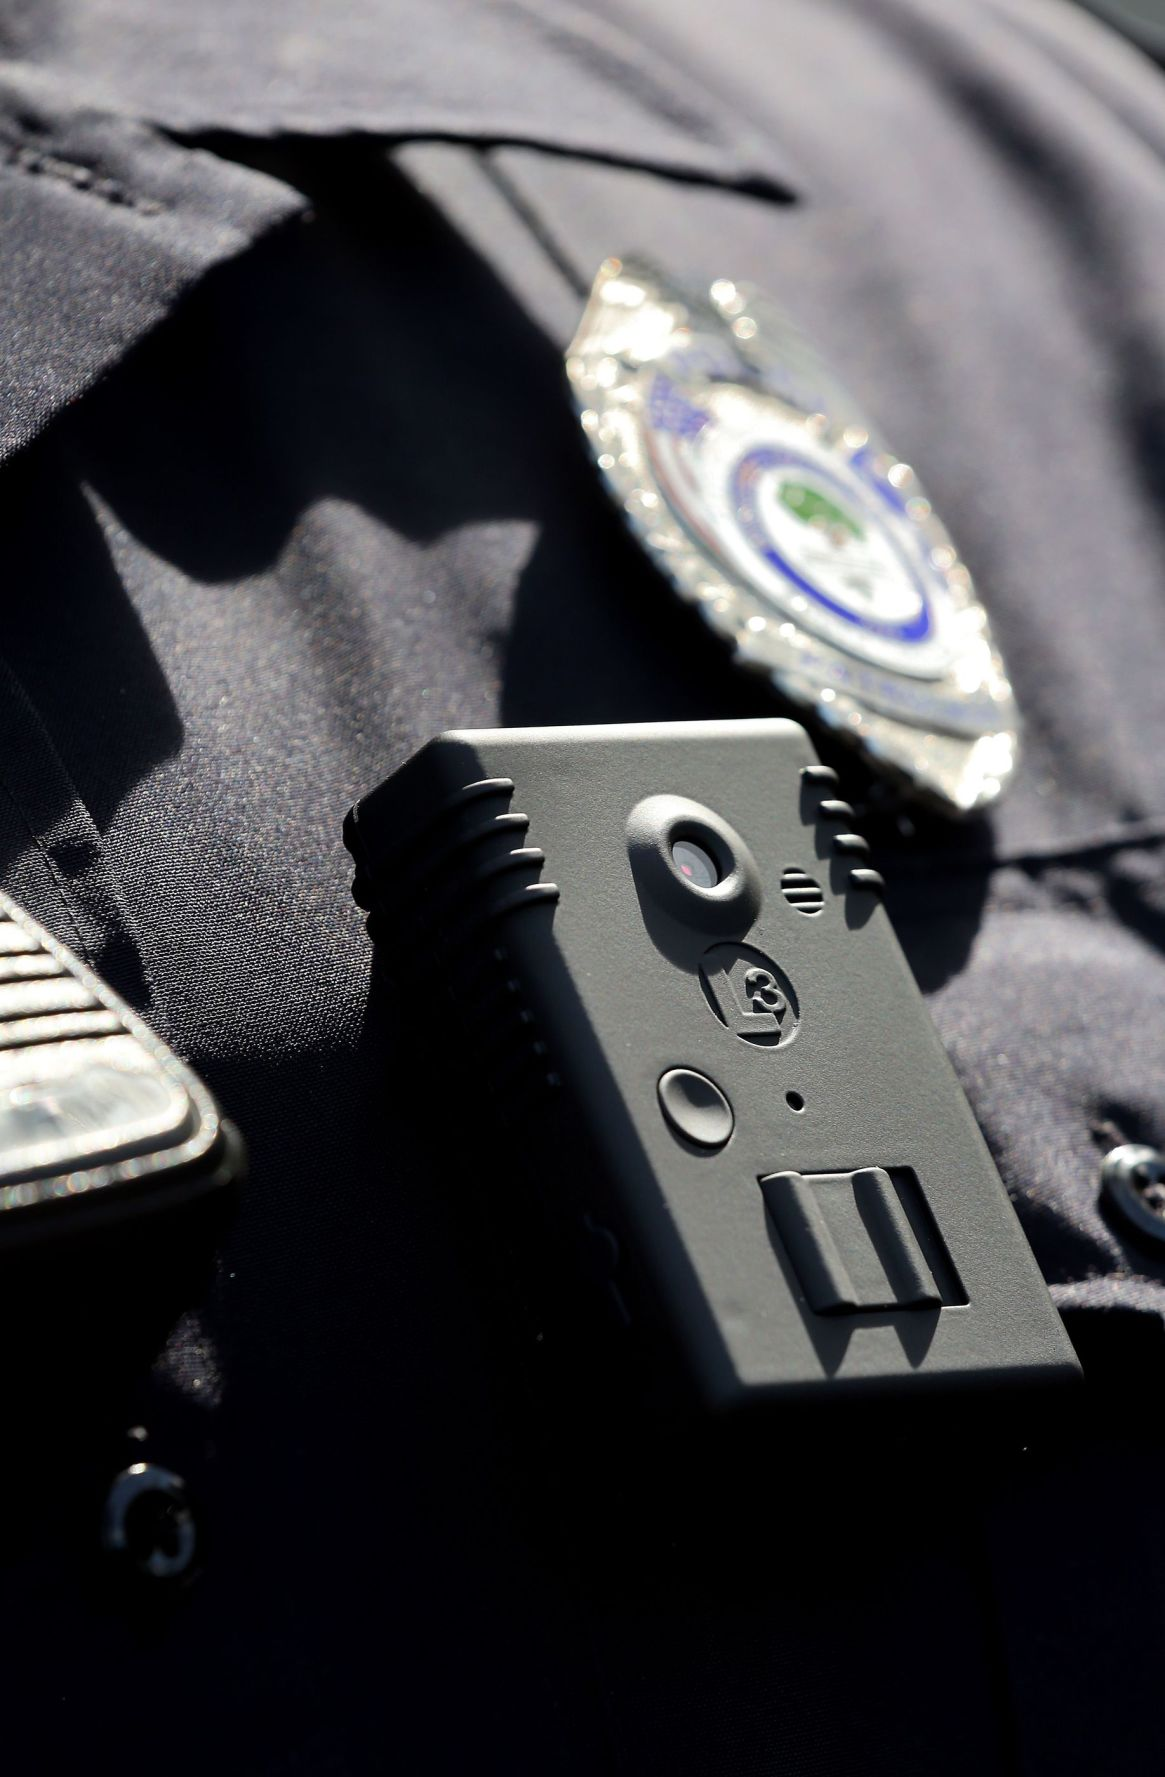 Spartanburg patrol officers to wear body cams by Labor Day